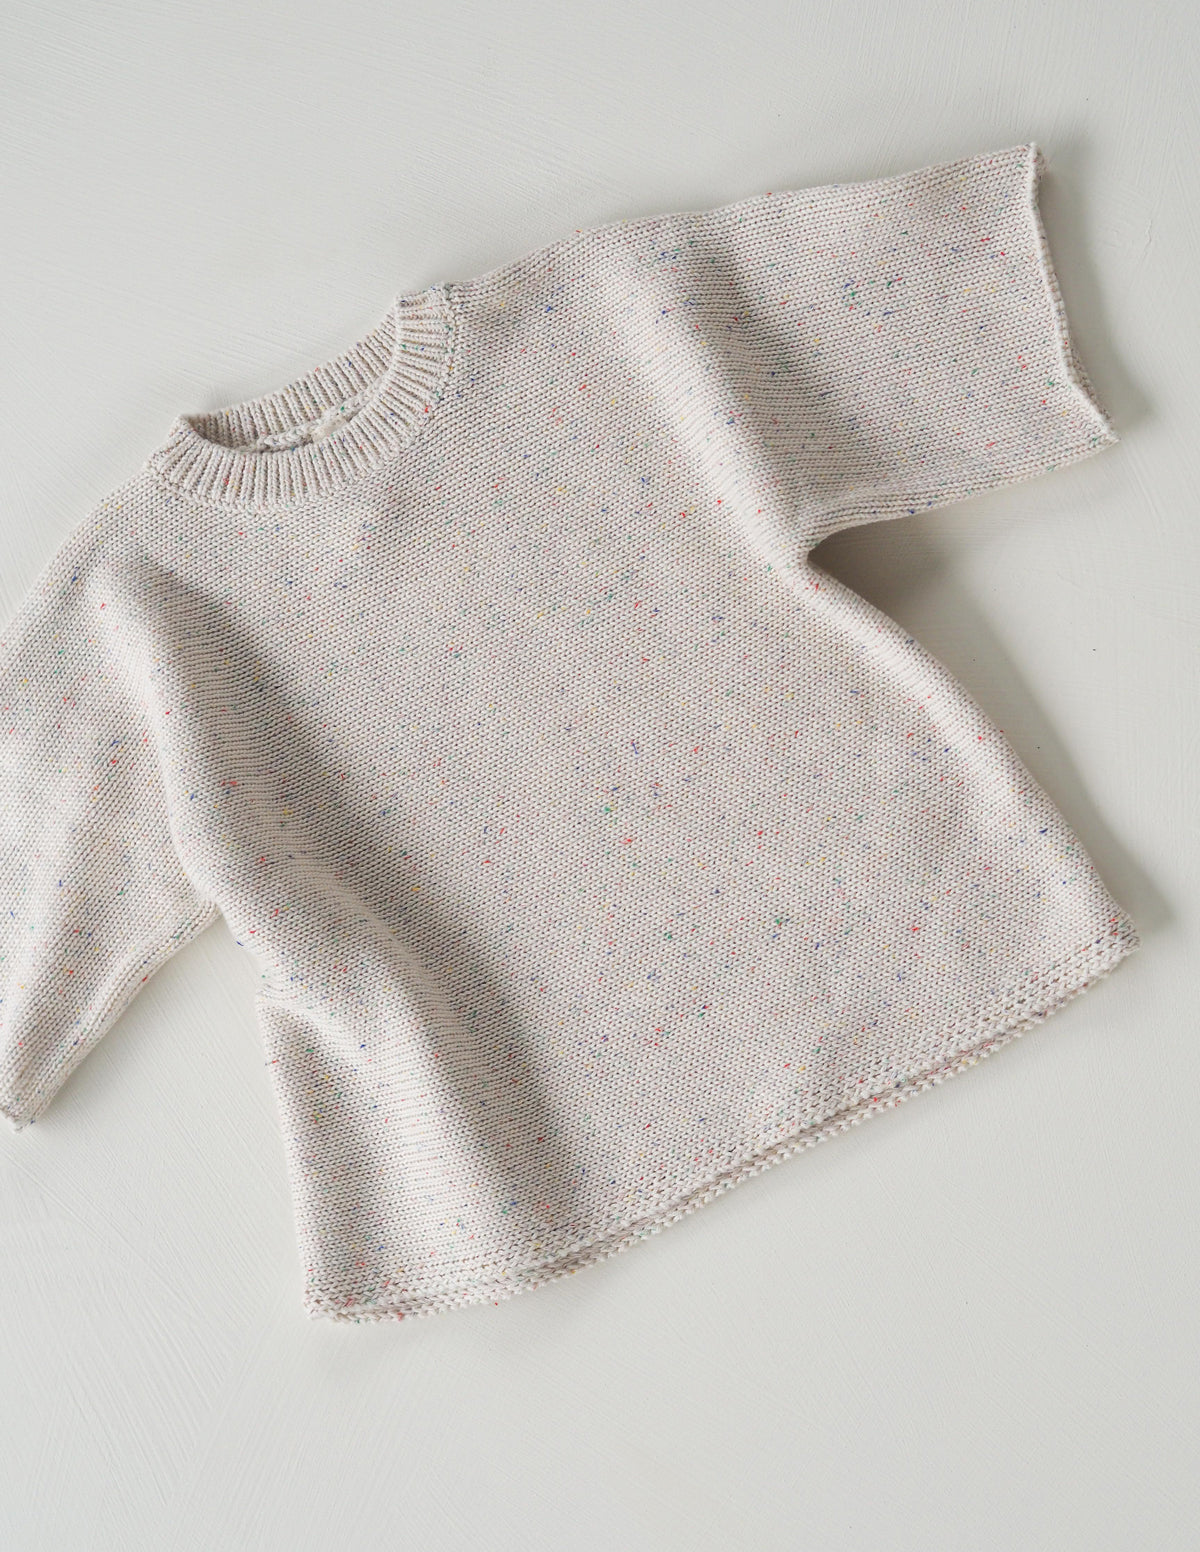 The original cream sprinkle knit tee